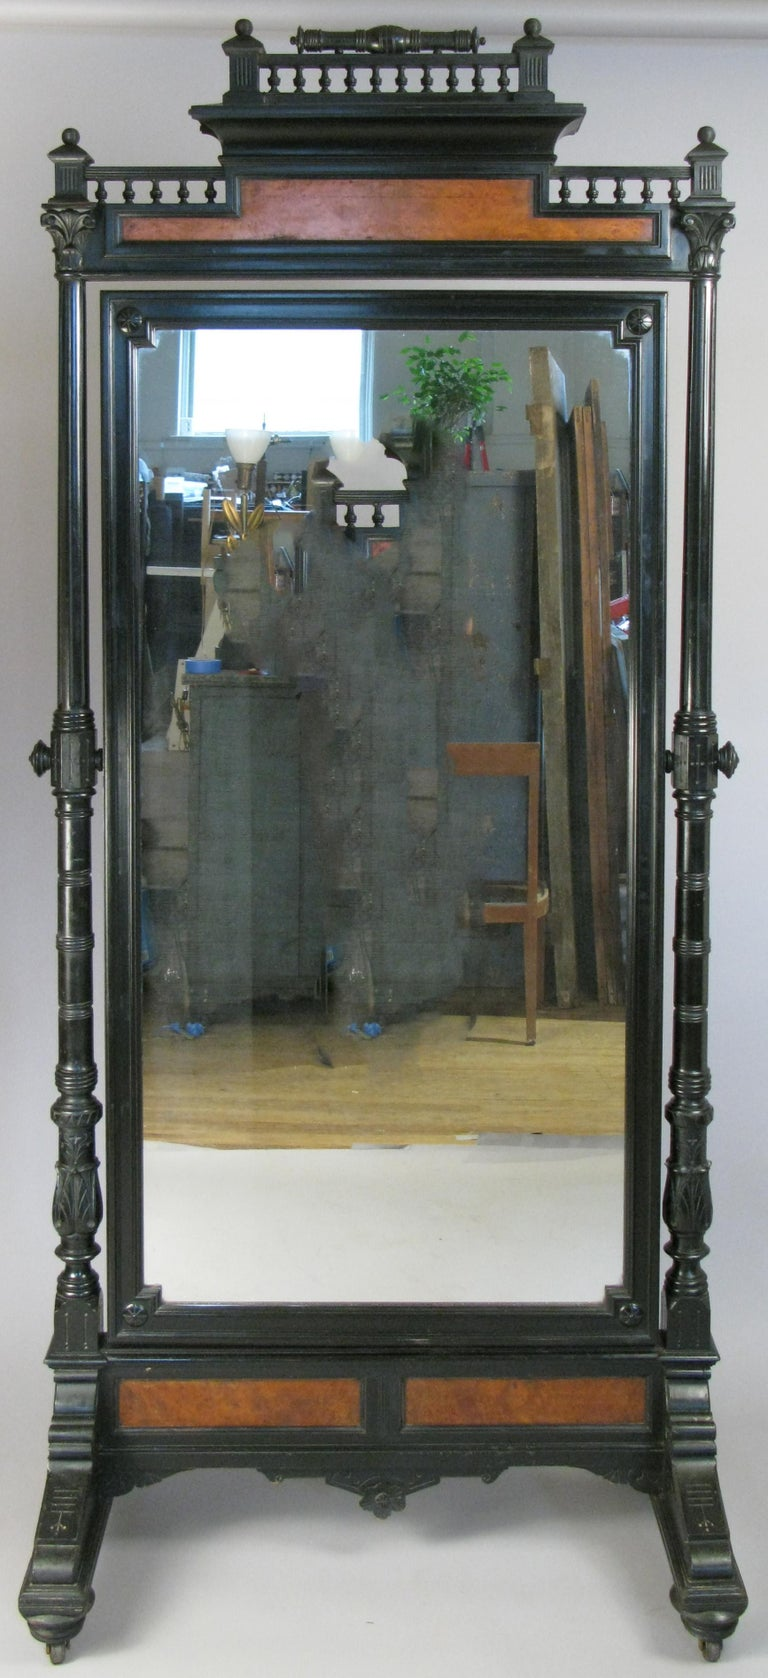 A very handsome 19th century standing cheval mirror, with an ebonized frame and burlwood accents. Beautiful details, design and scale.